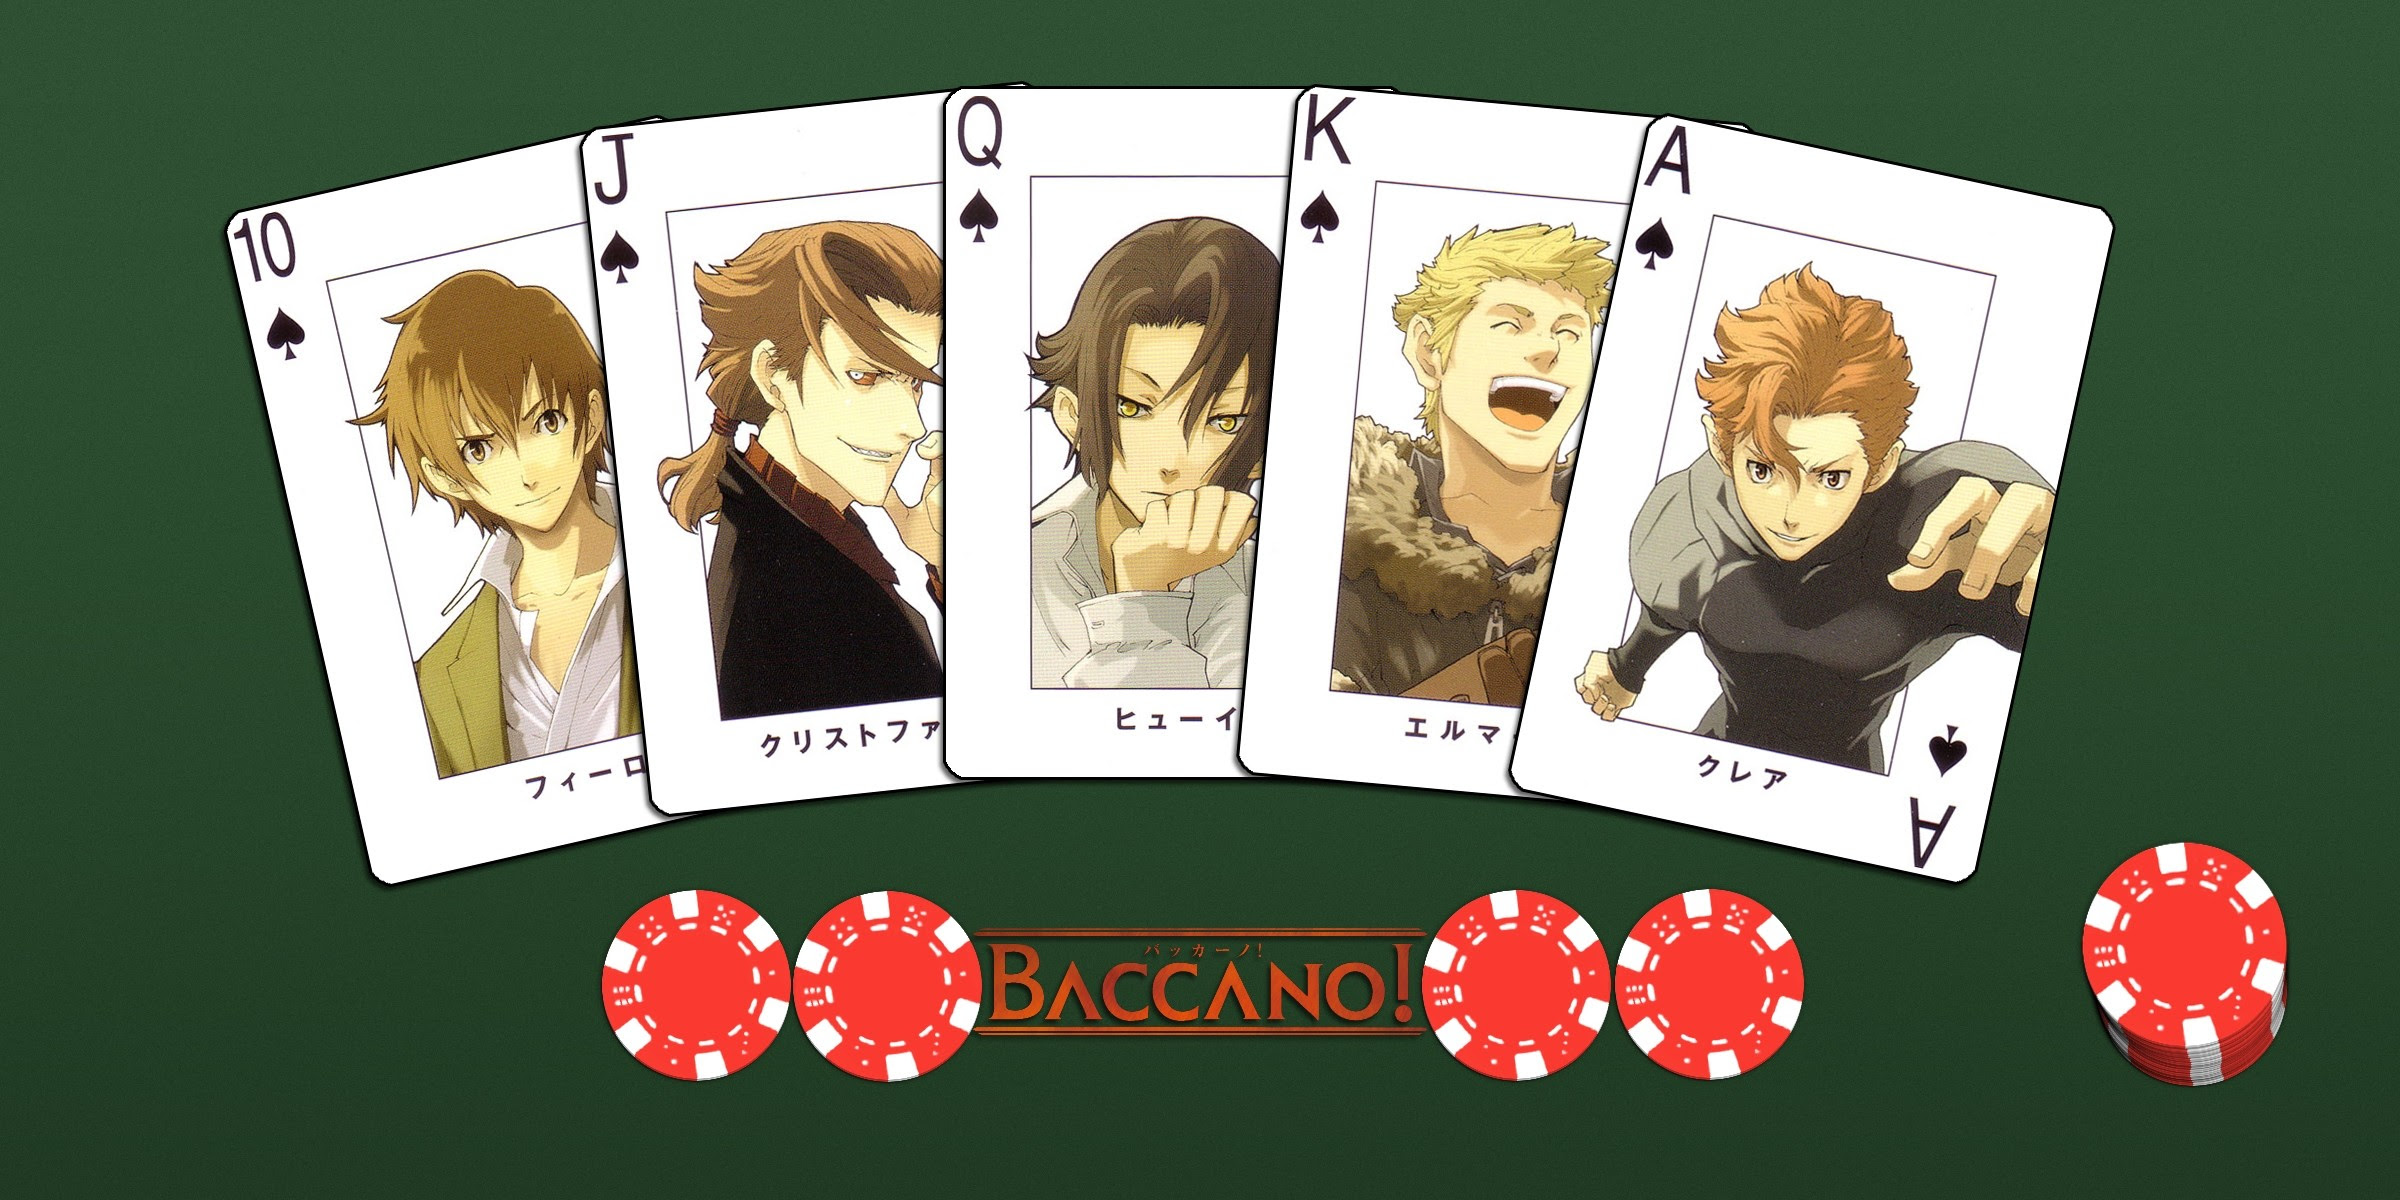 Baccano Wallpapers 60 Images Images, Photos, Reviews